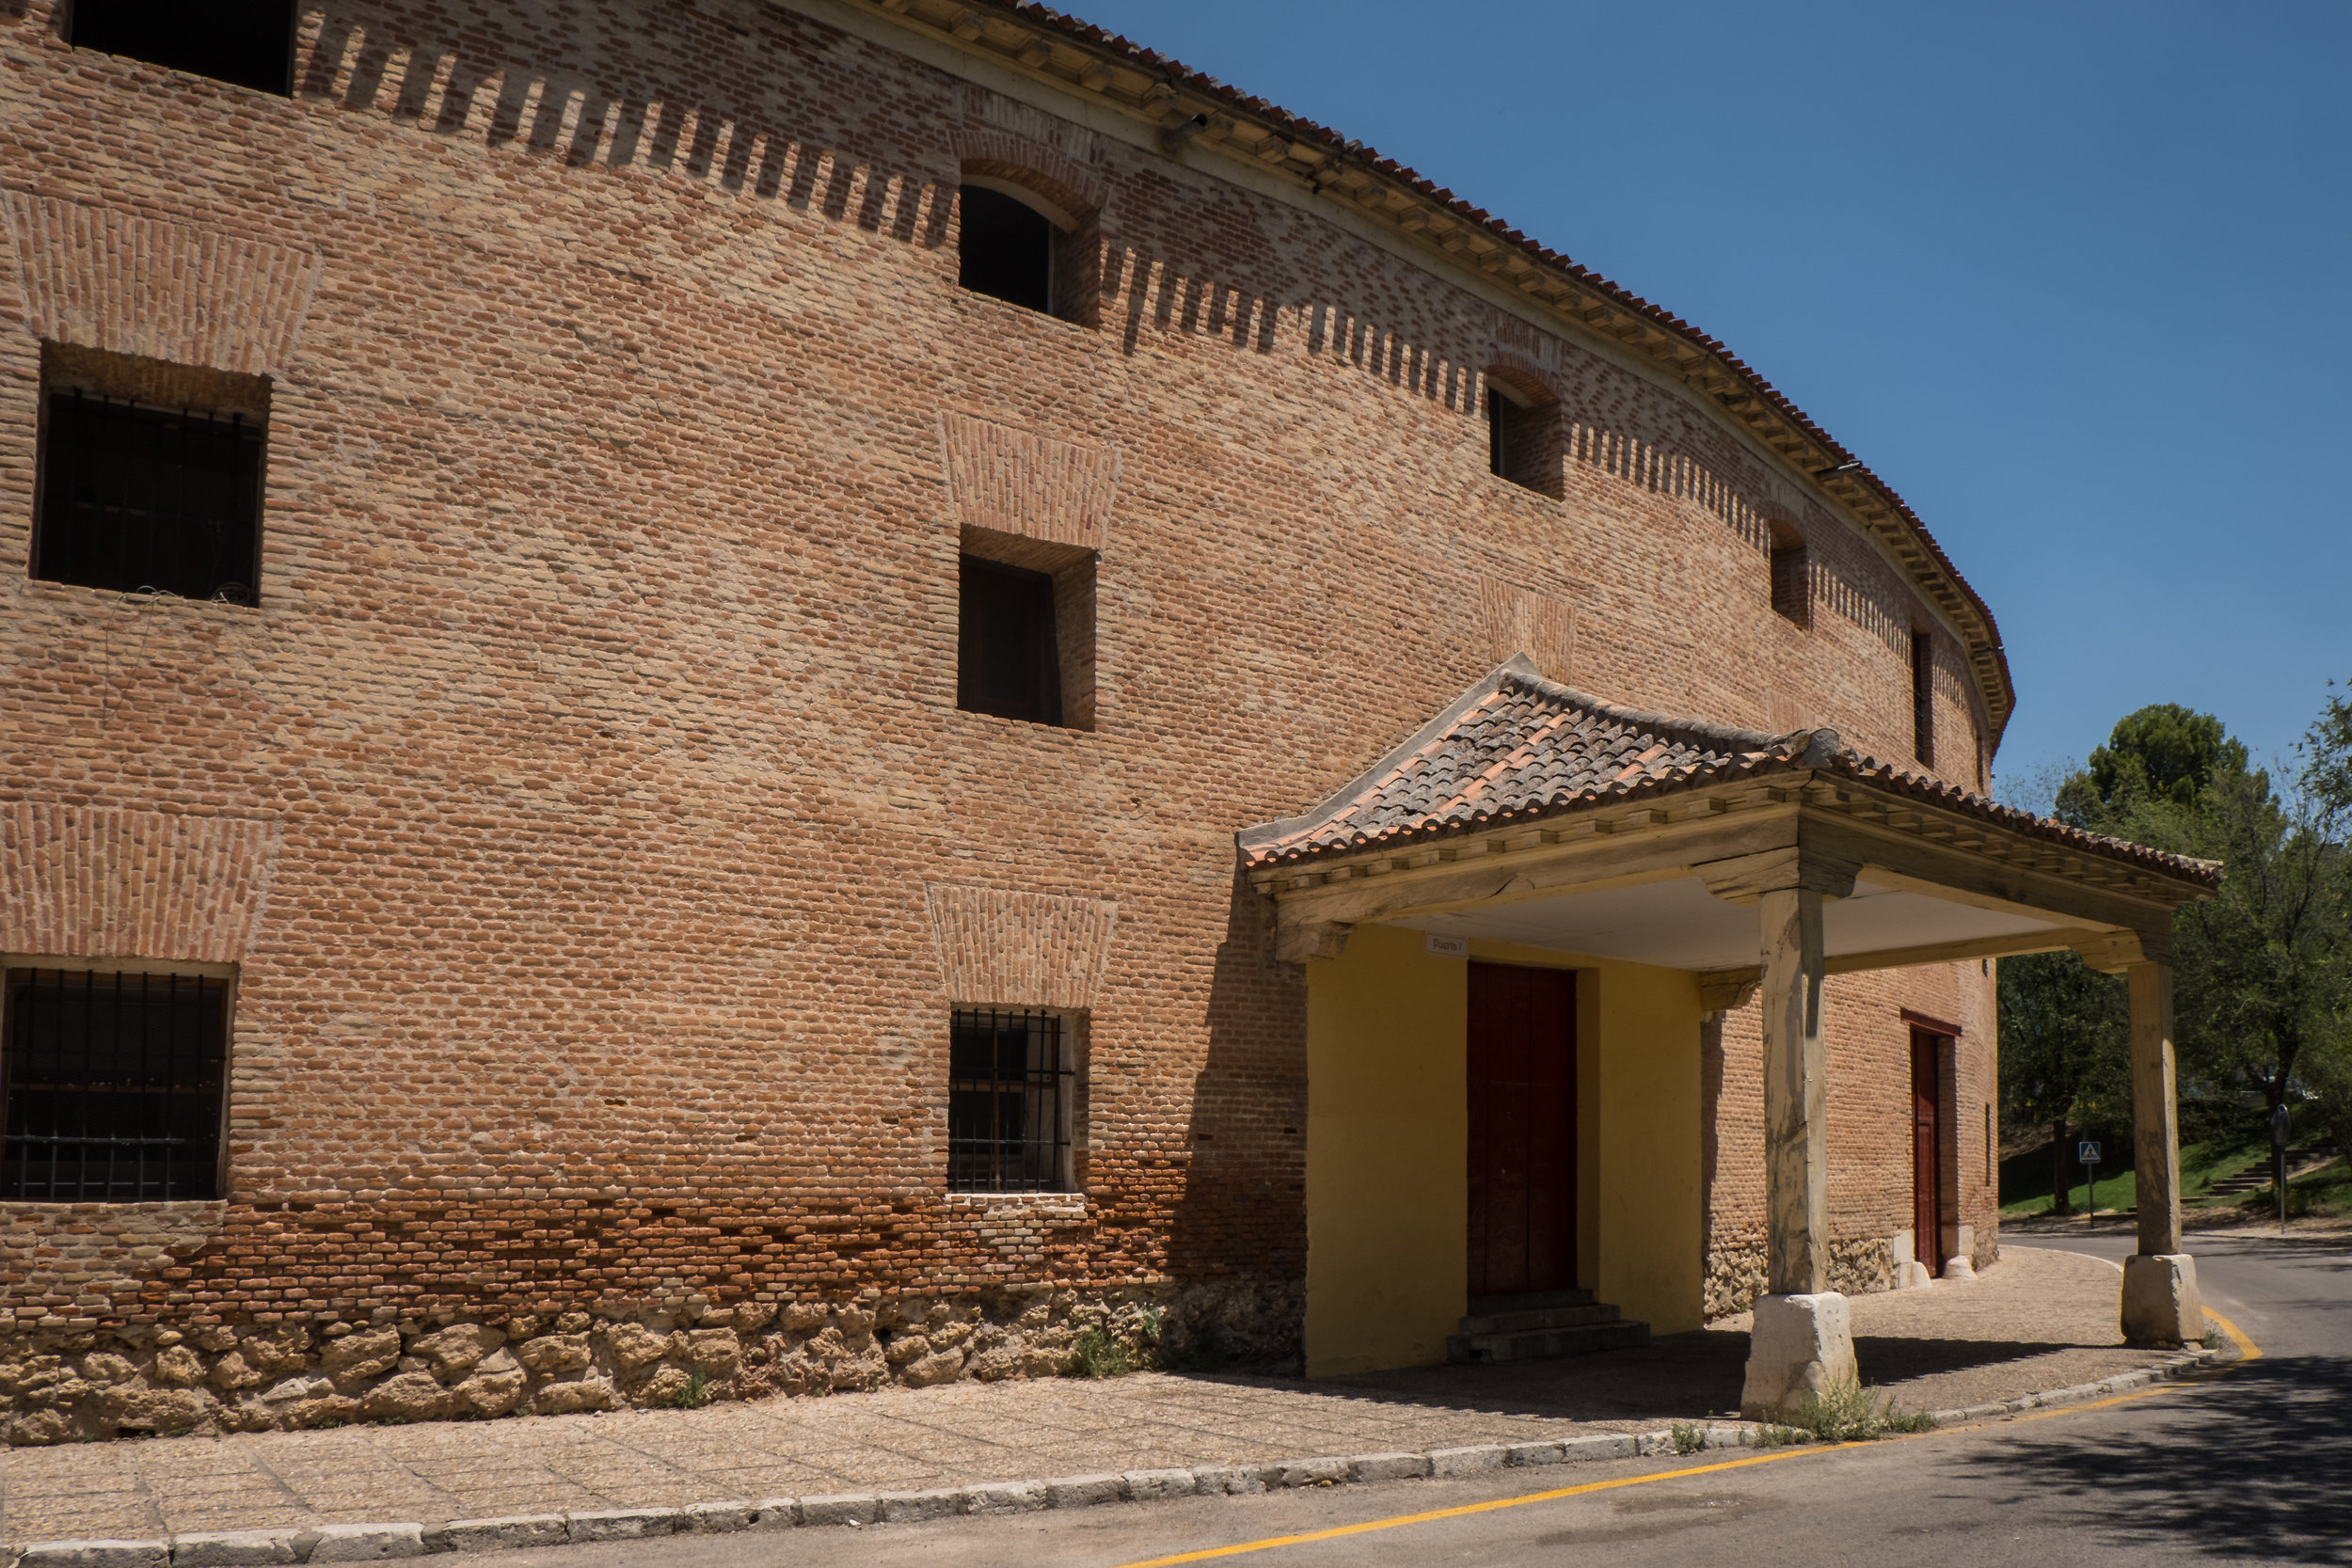 Plaza de Toros, one of Spain's oldest bull rings with a seating capacity of 9000